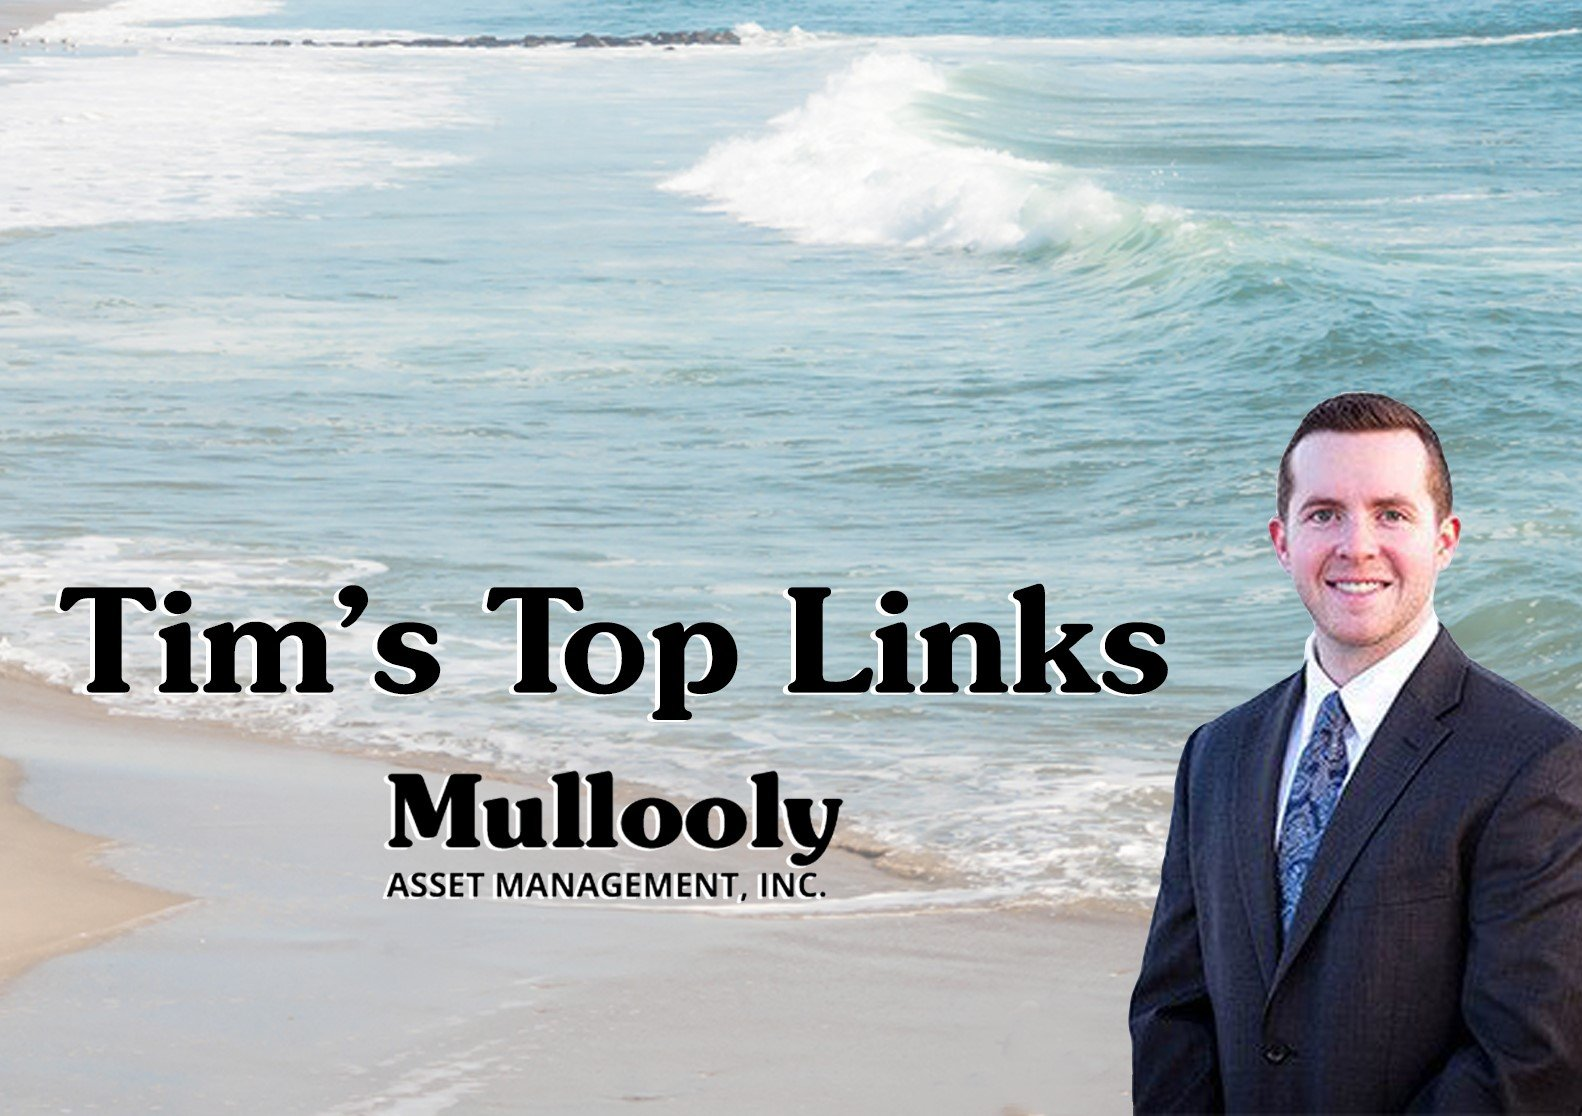 Tims Top Links